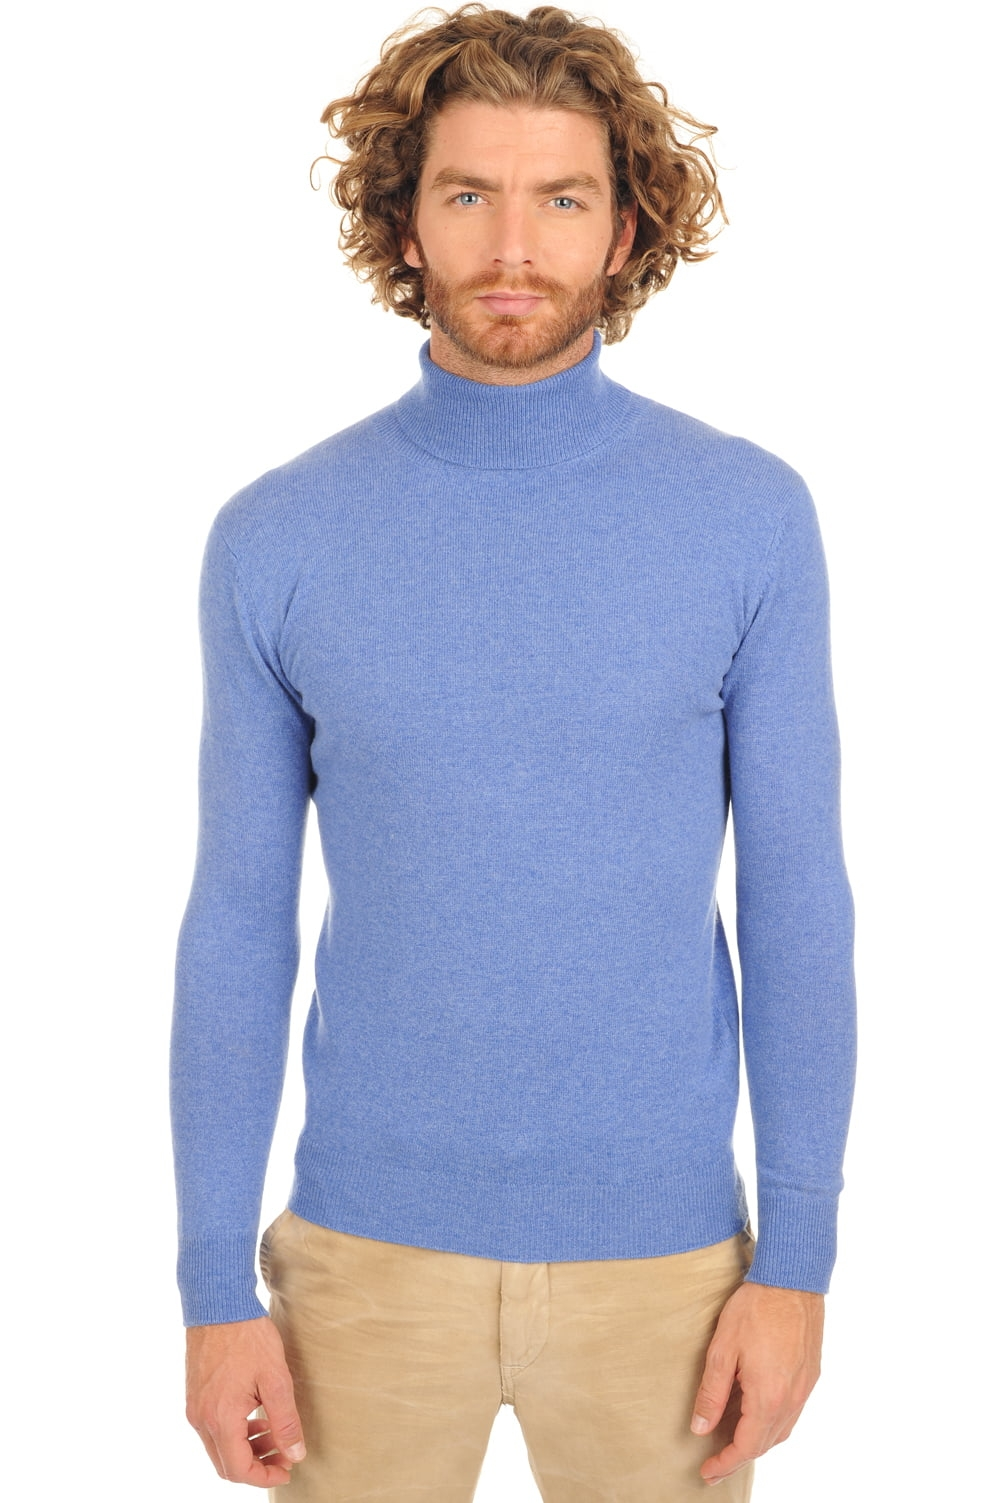 cachemire pull homme col roule tarry really blue m